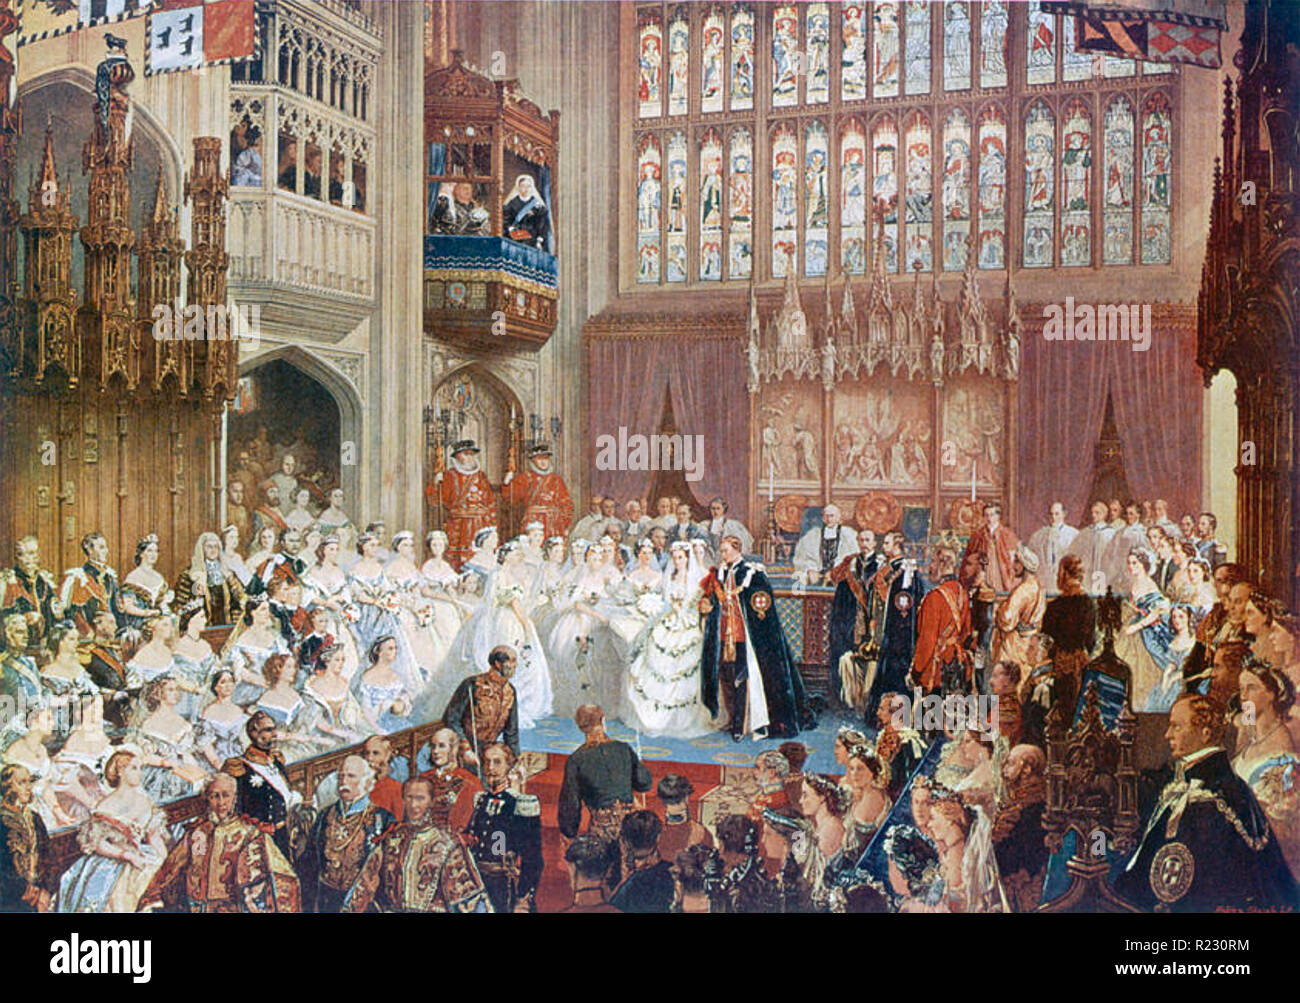 EDWARD VII (1841-1910) Marriage to Alexandra of Denmark in St. George's Chapel, Windsor, 10 March 1863. Note Queen Victoria watching from balcony - Stock Image